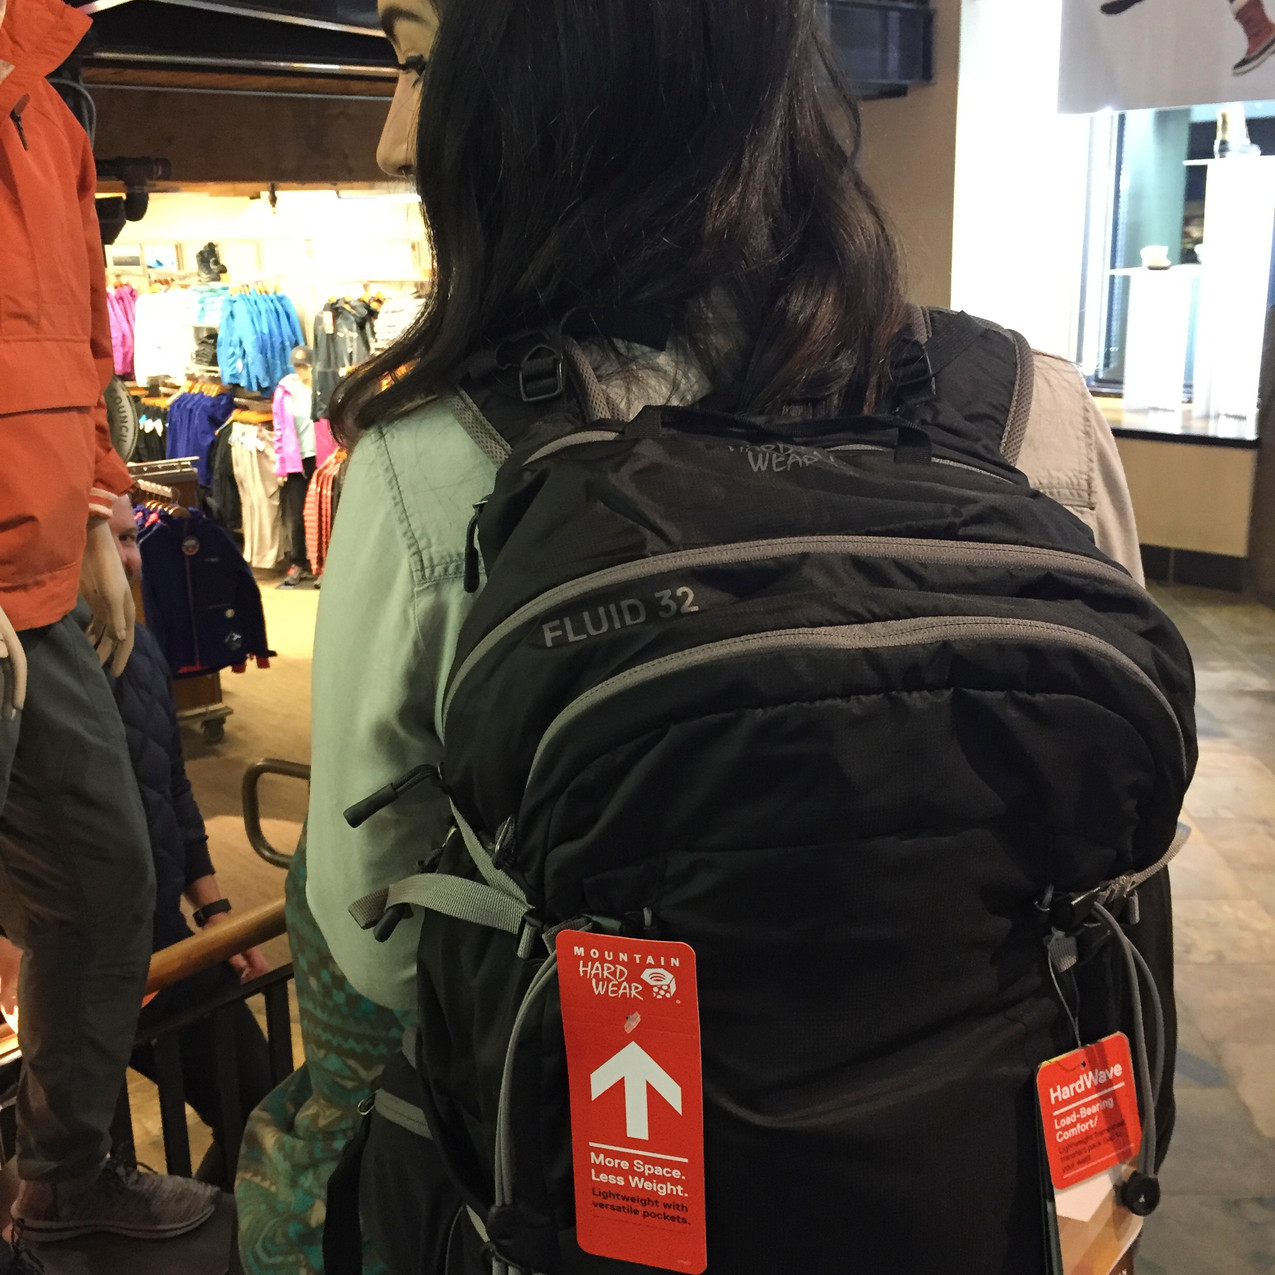 Backpack give-away